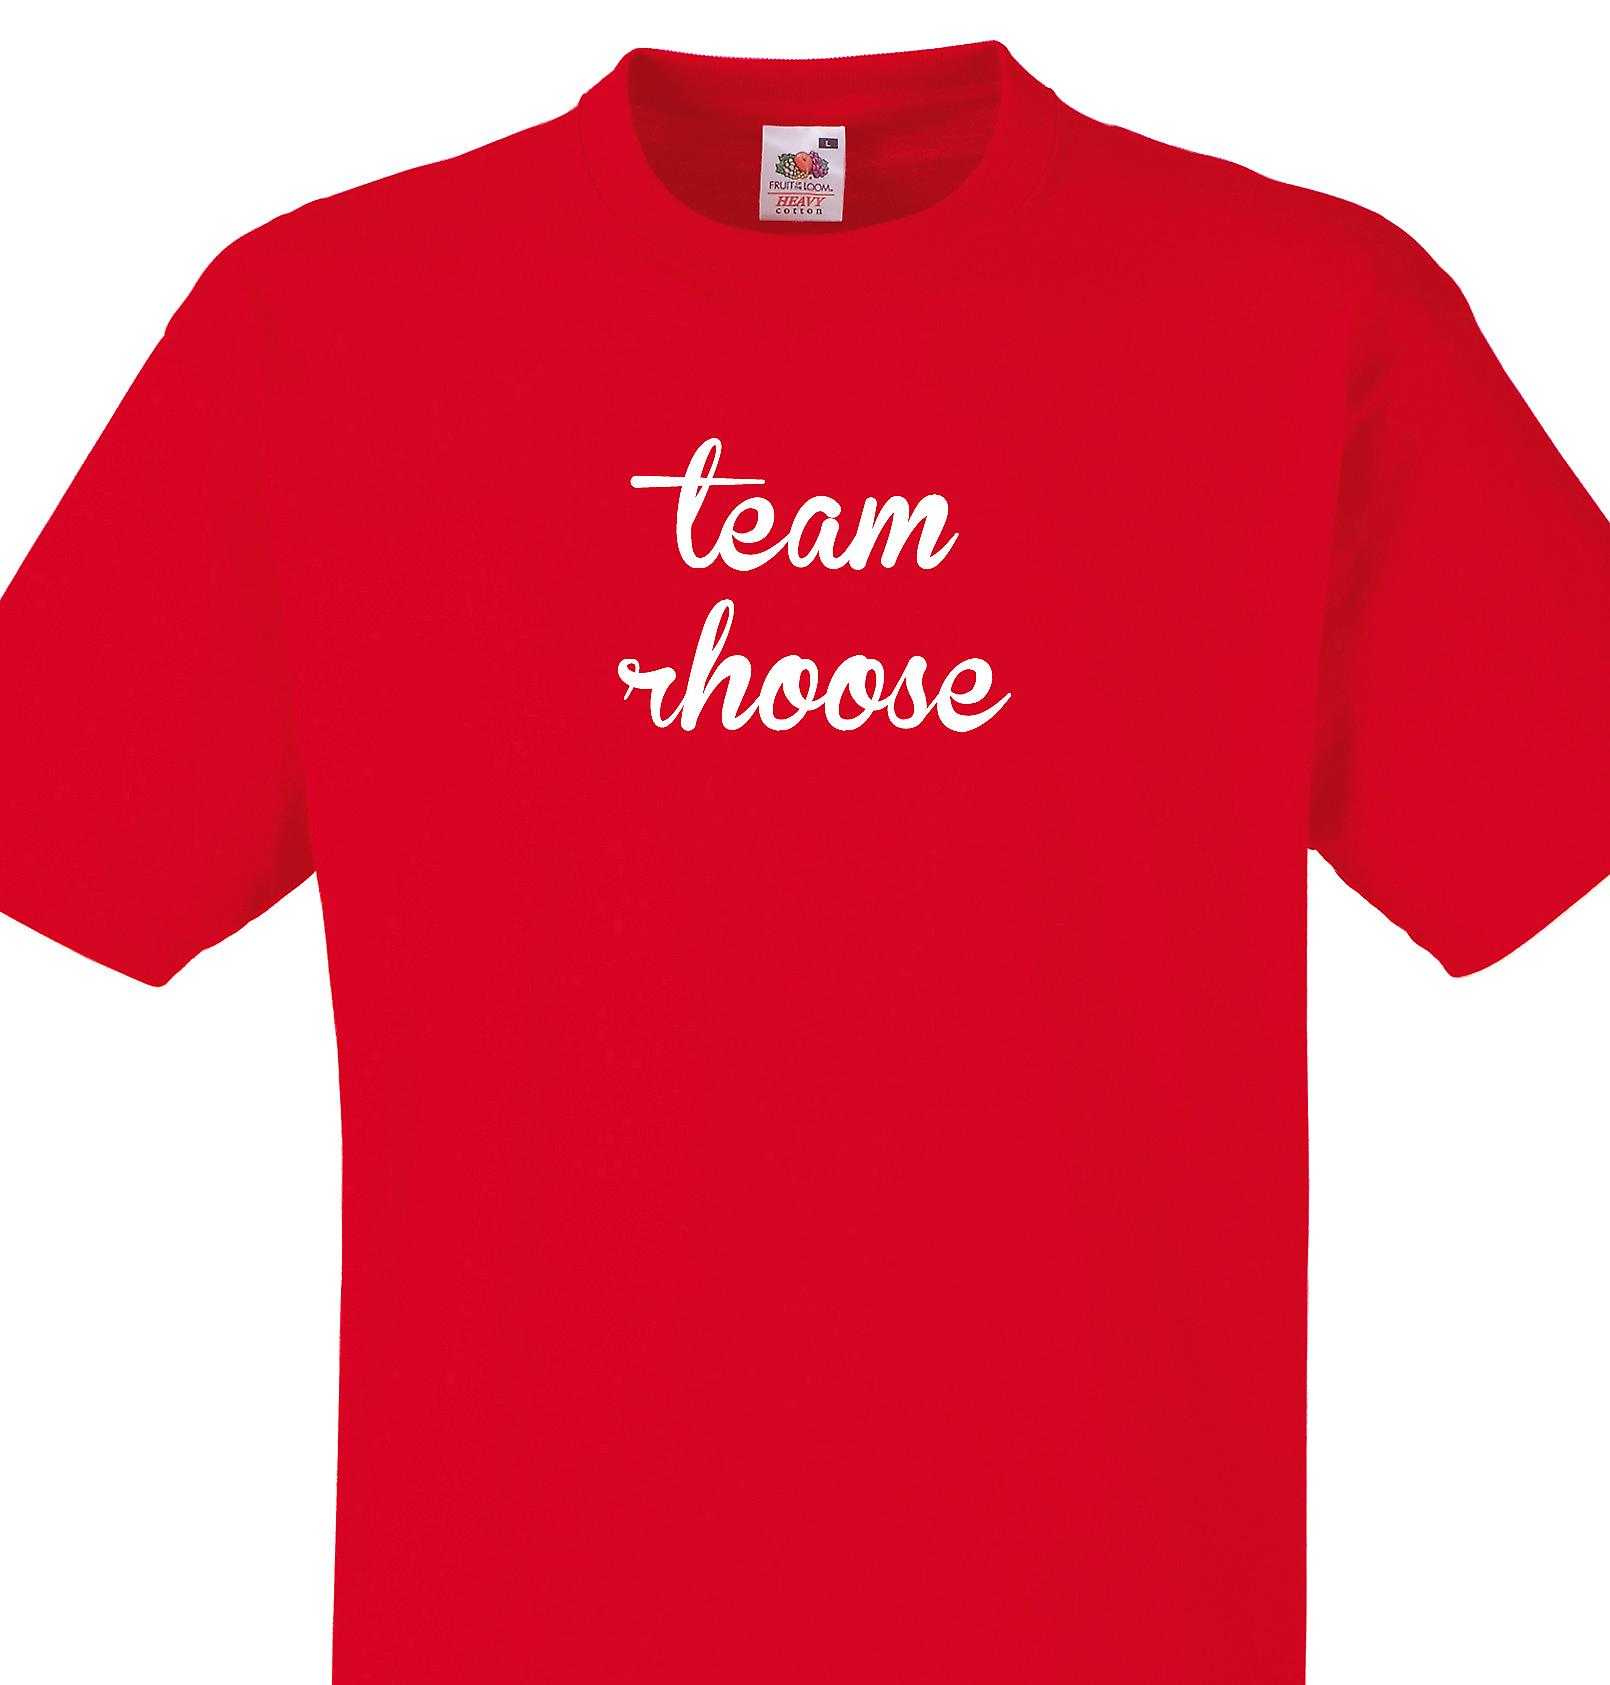 Team Rhoose Red T shirt